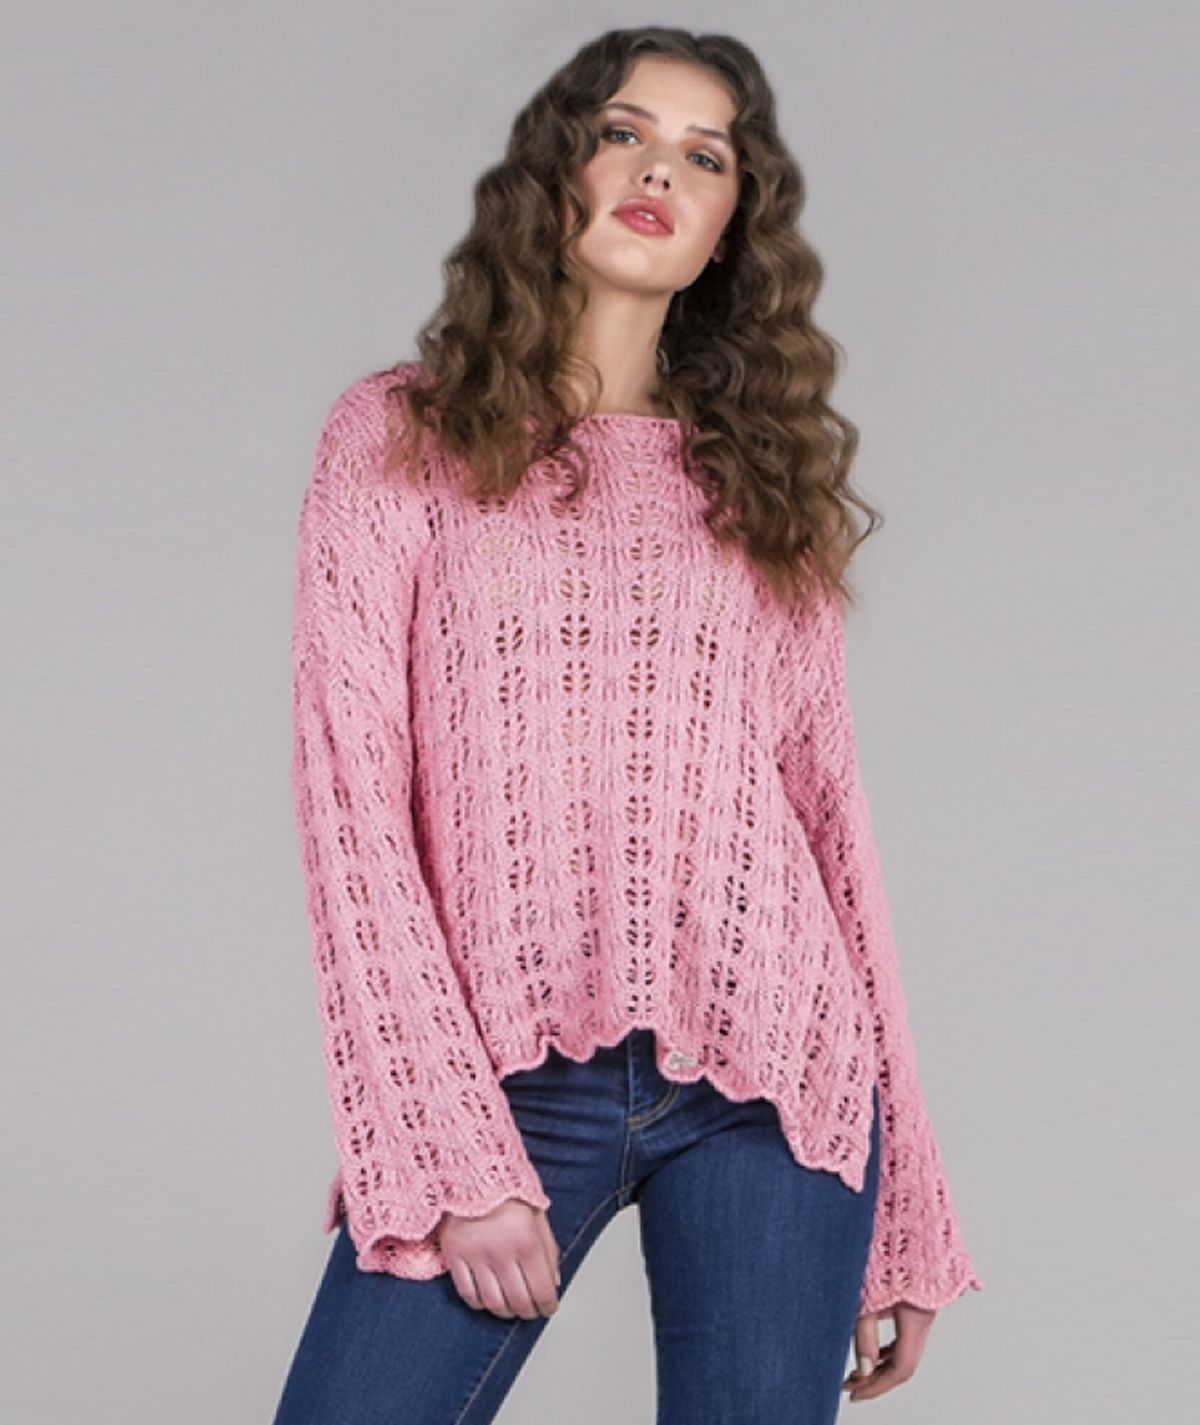 Perforated sweater